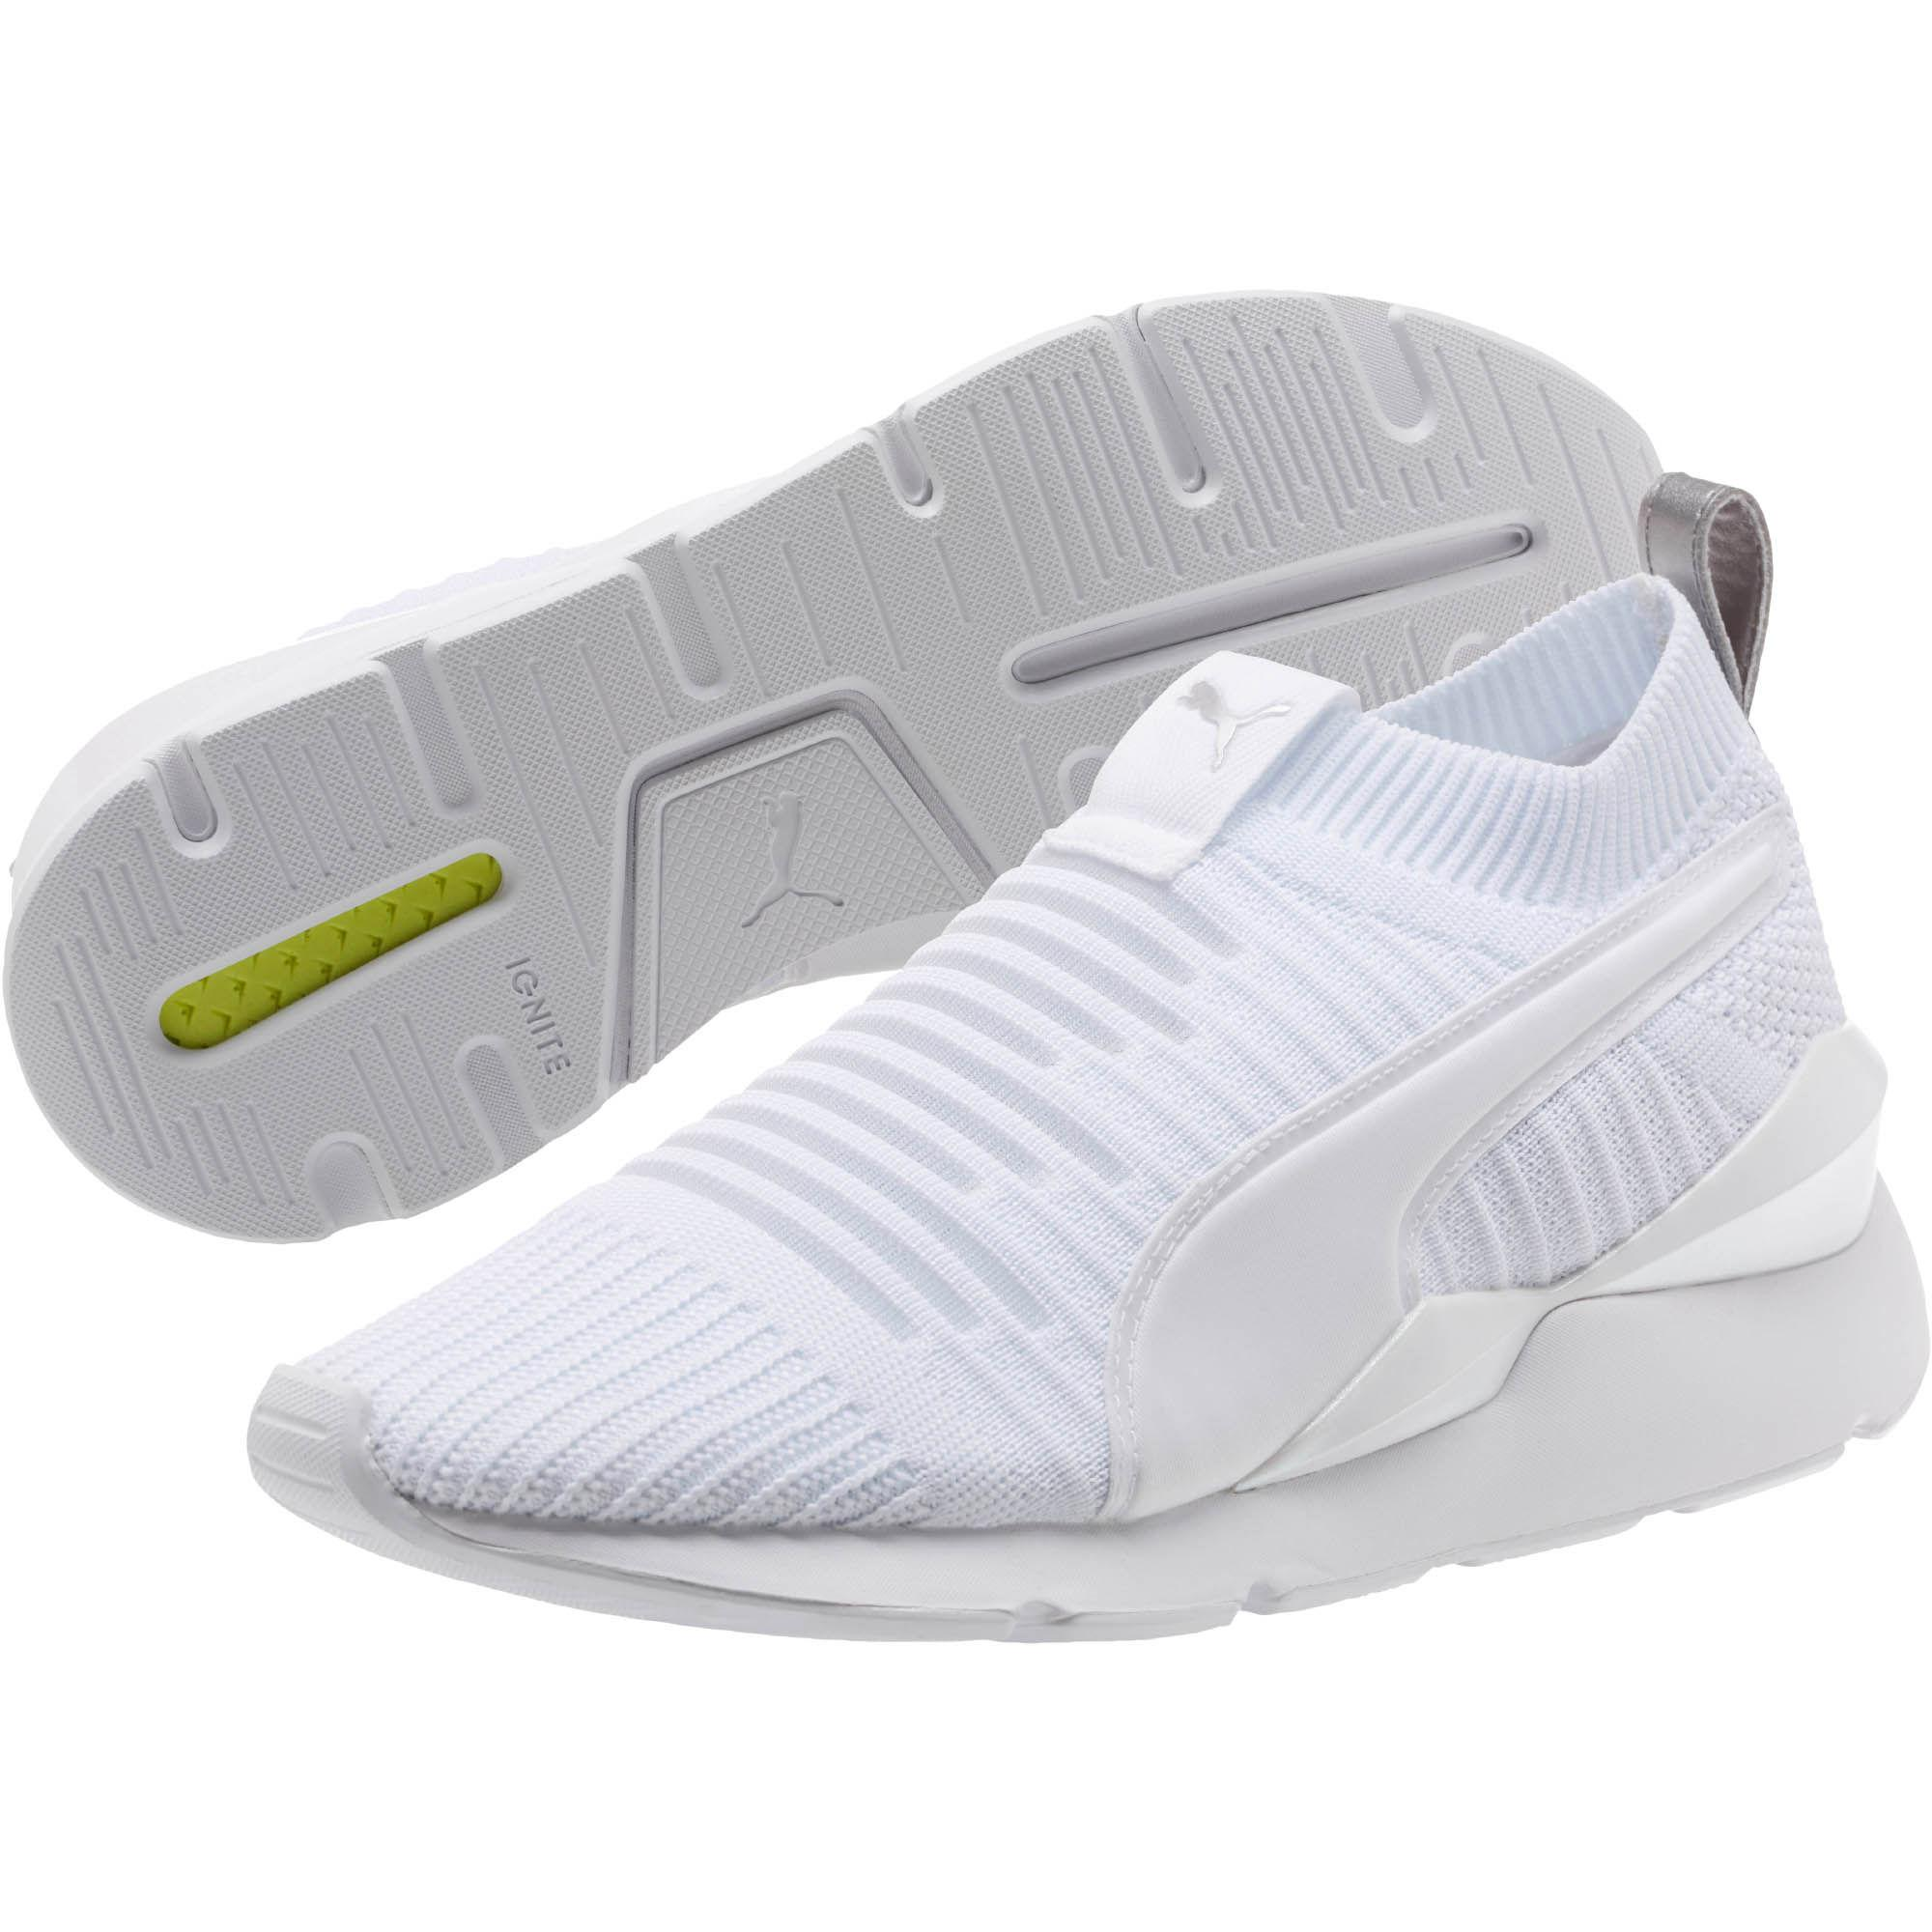 110ab2c1 PUMA Muse Slip On July Women's Sneakers in White - Lyst